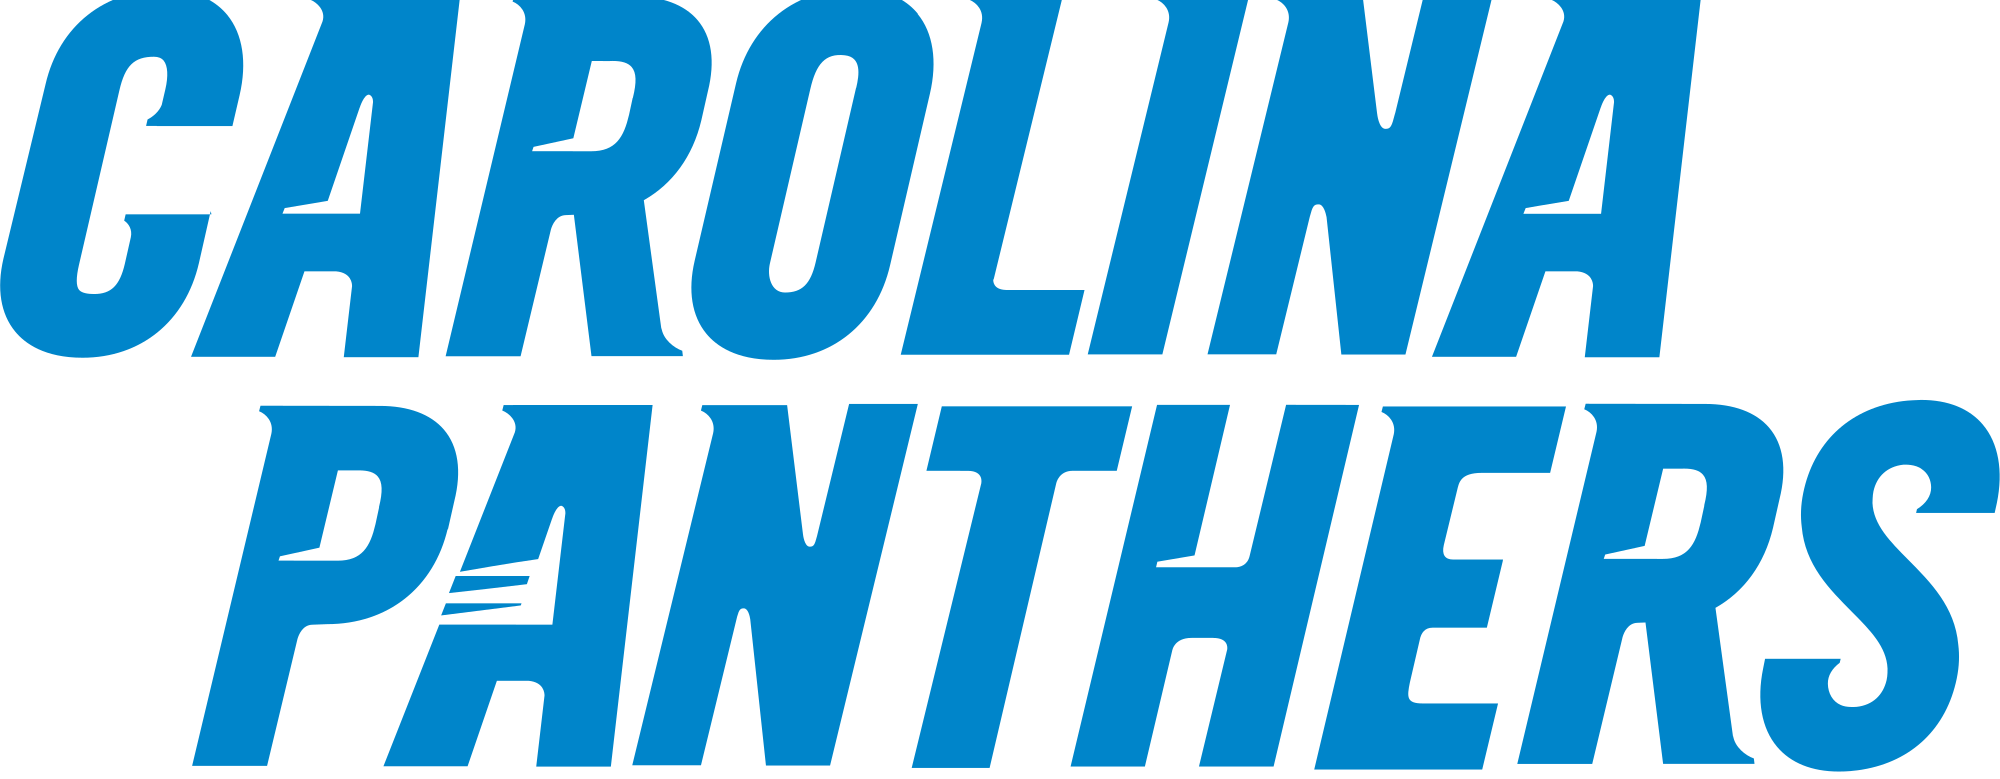 Carolina panthers logo png. File wordmark svg wikimedia